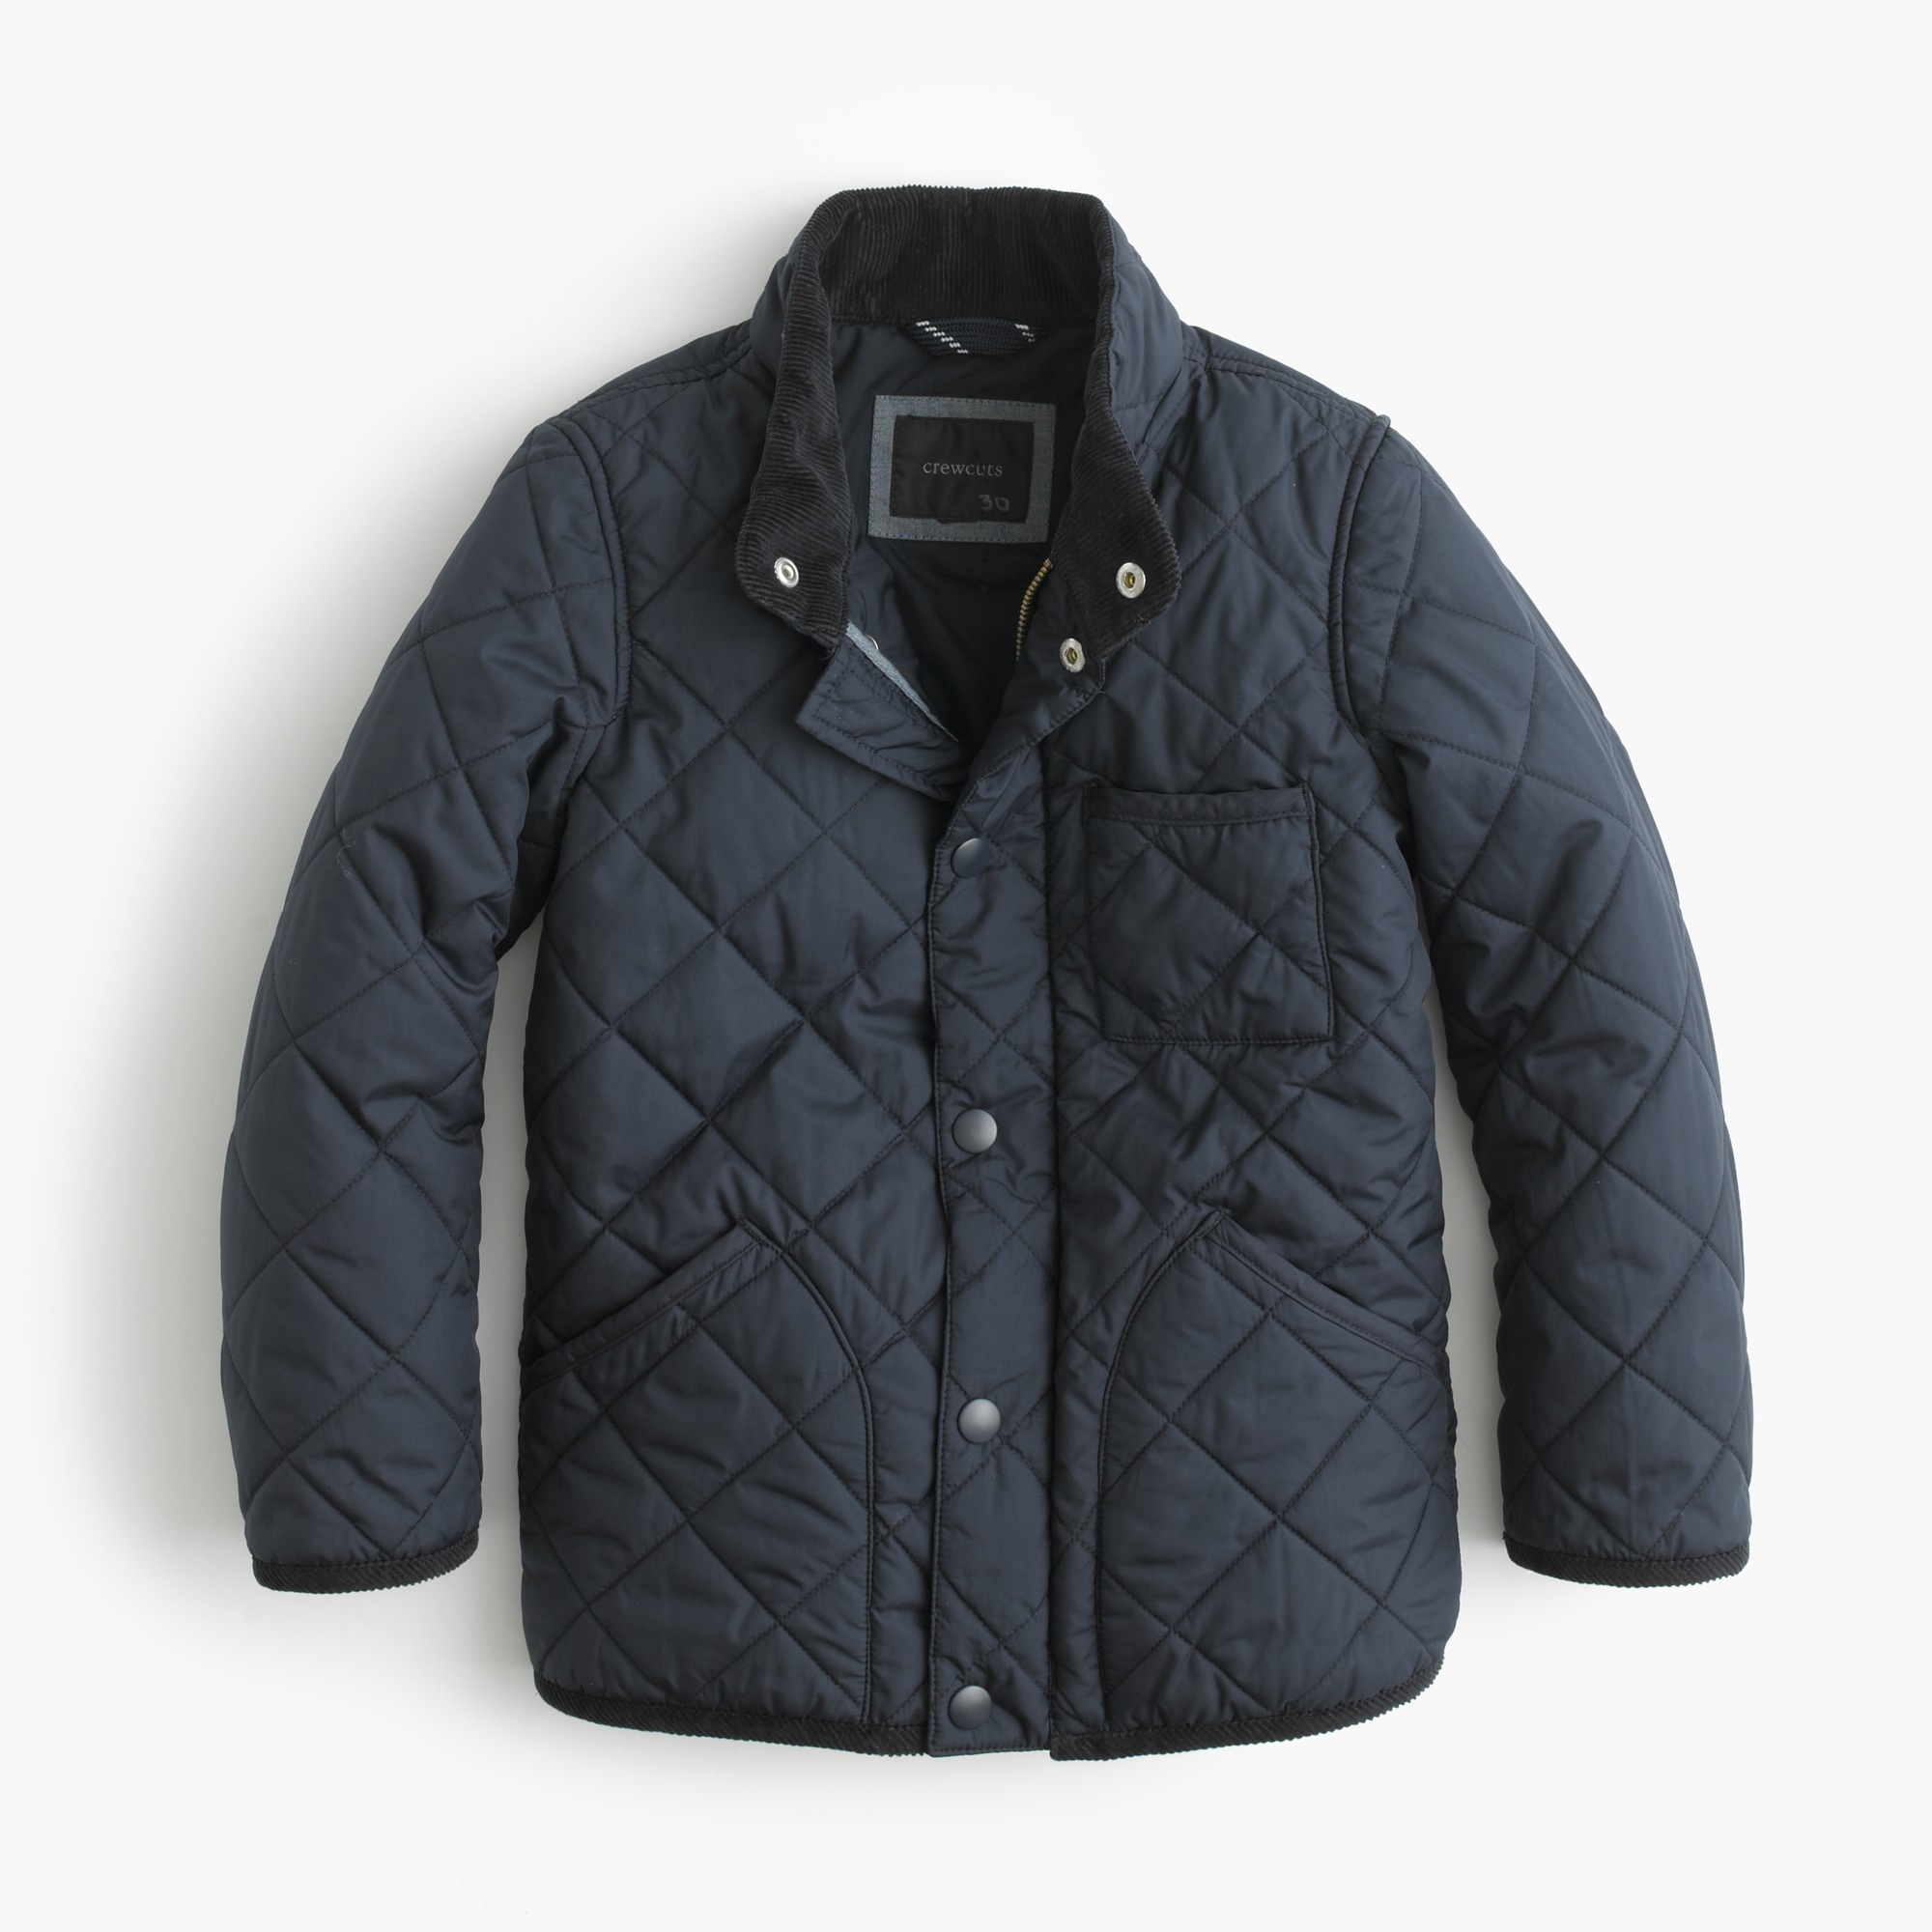 Image 3 for Boys' Sussex quilted jacket